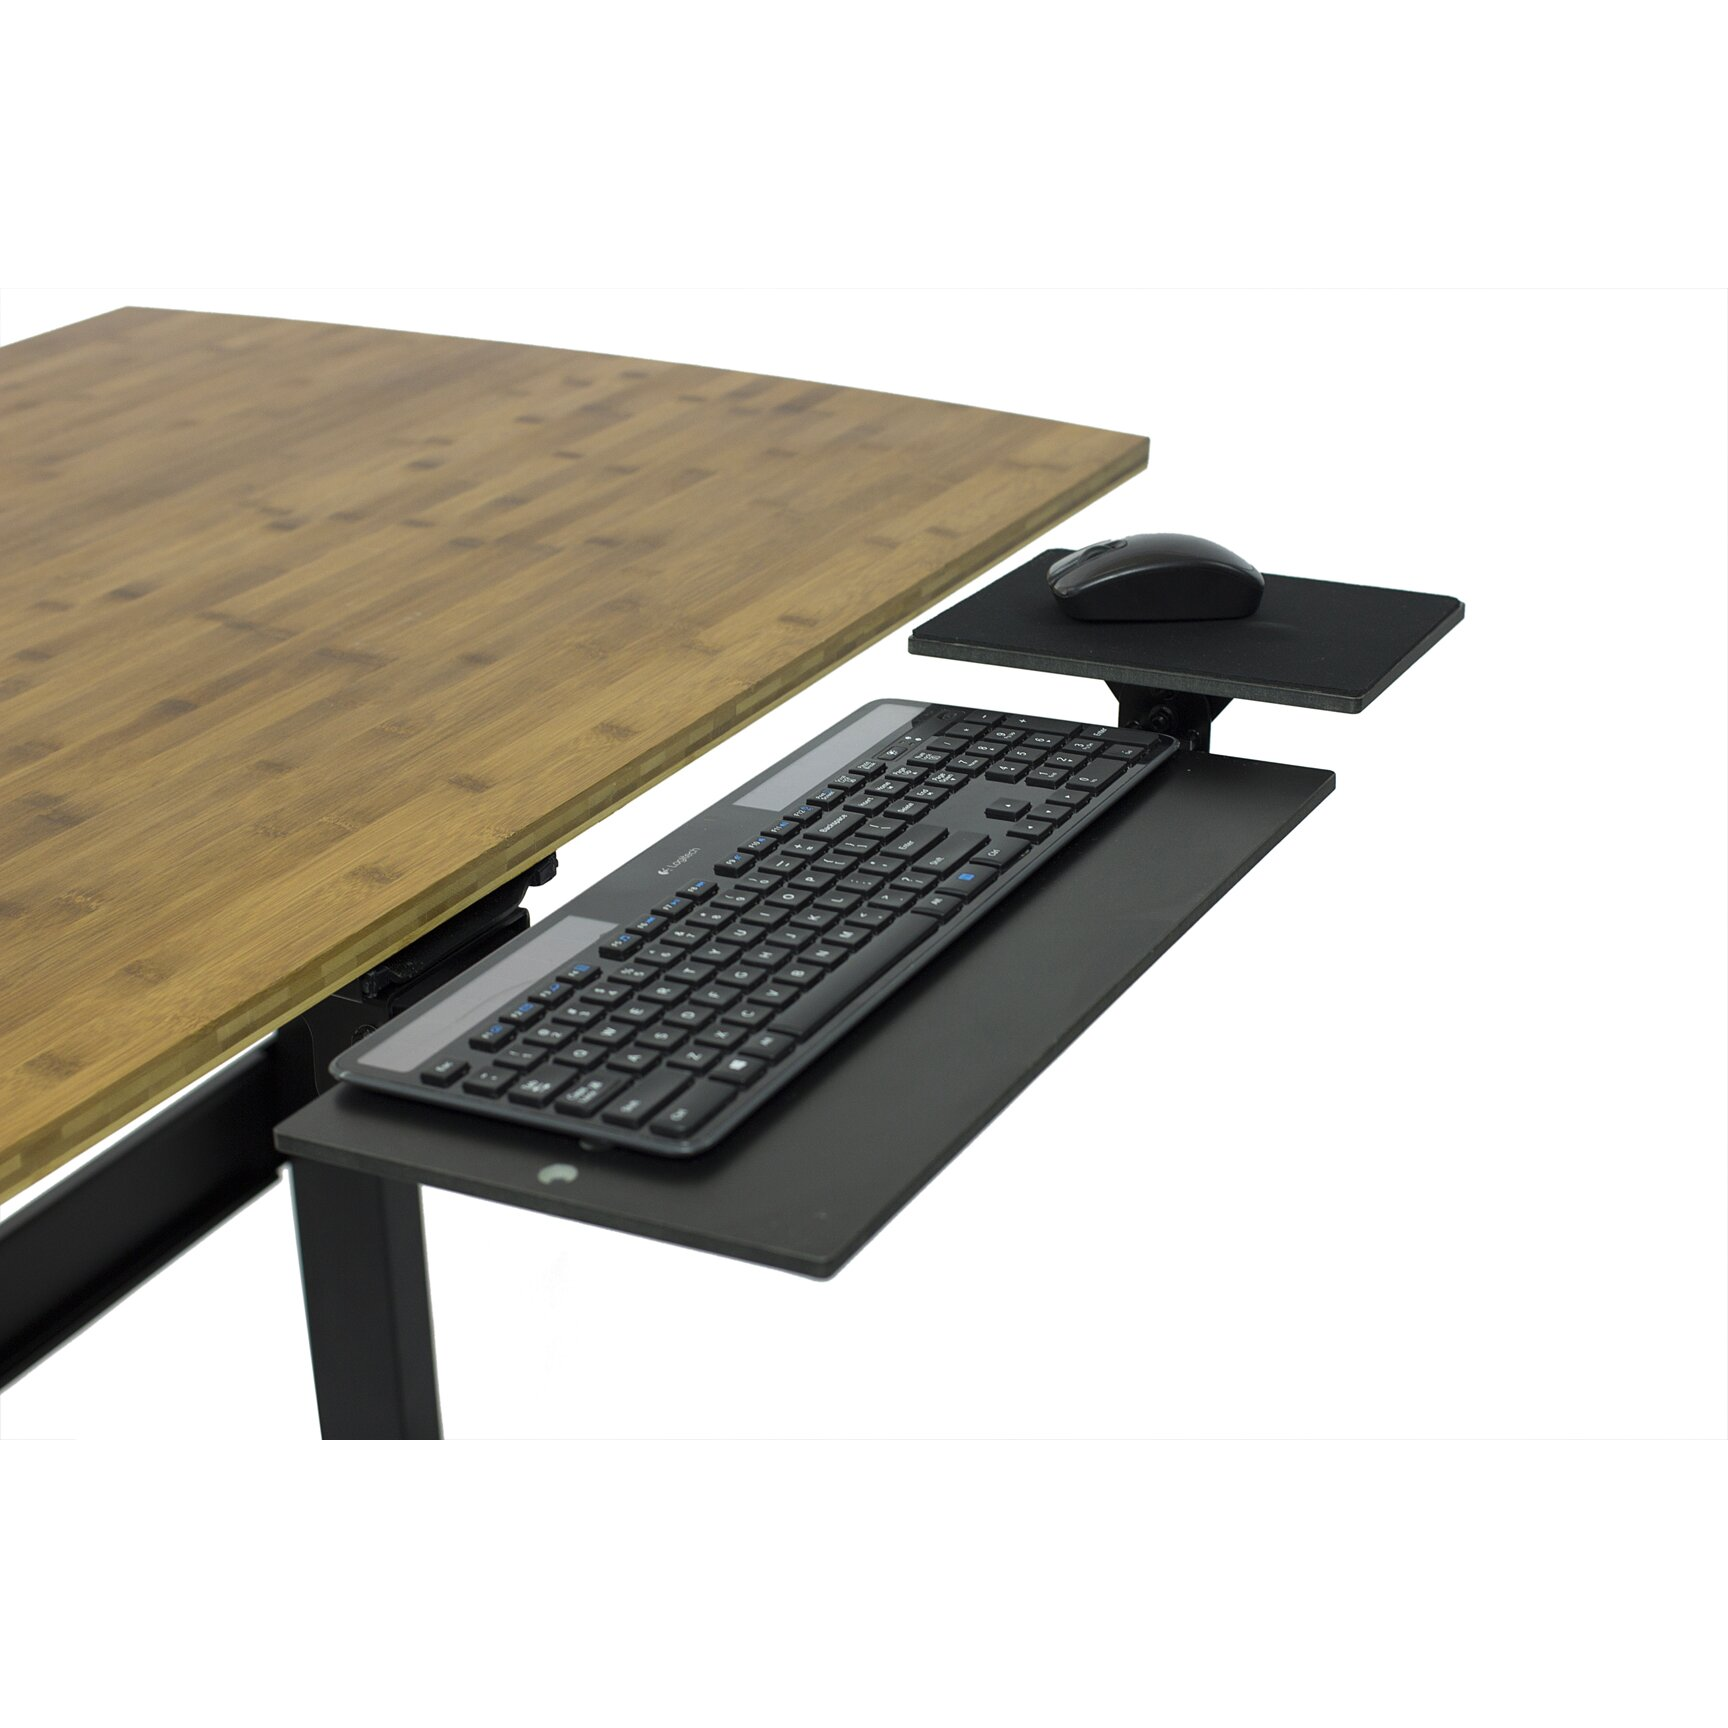 uncaged ergonomics under desk computer keyboard tray reviews wayfair. Black Bedroom Furniture Sets. Home Design Ideas